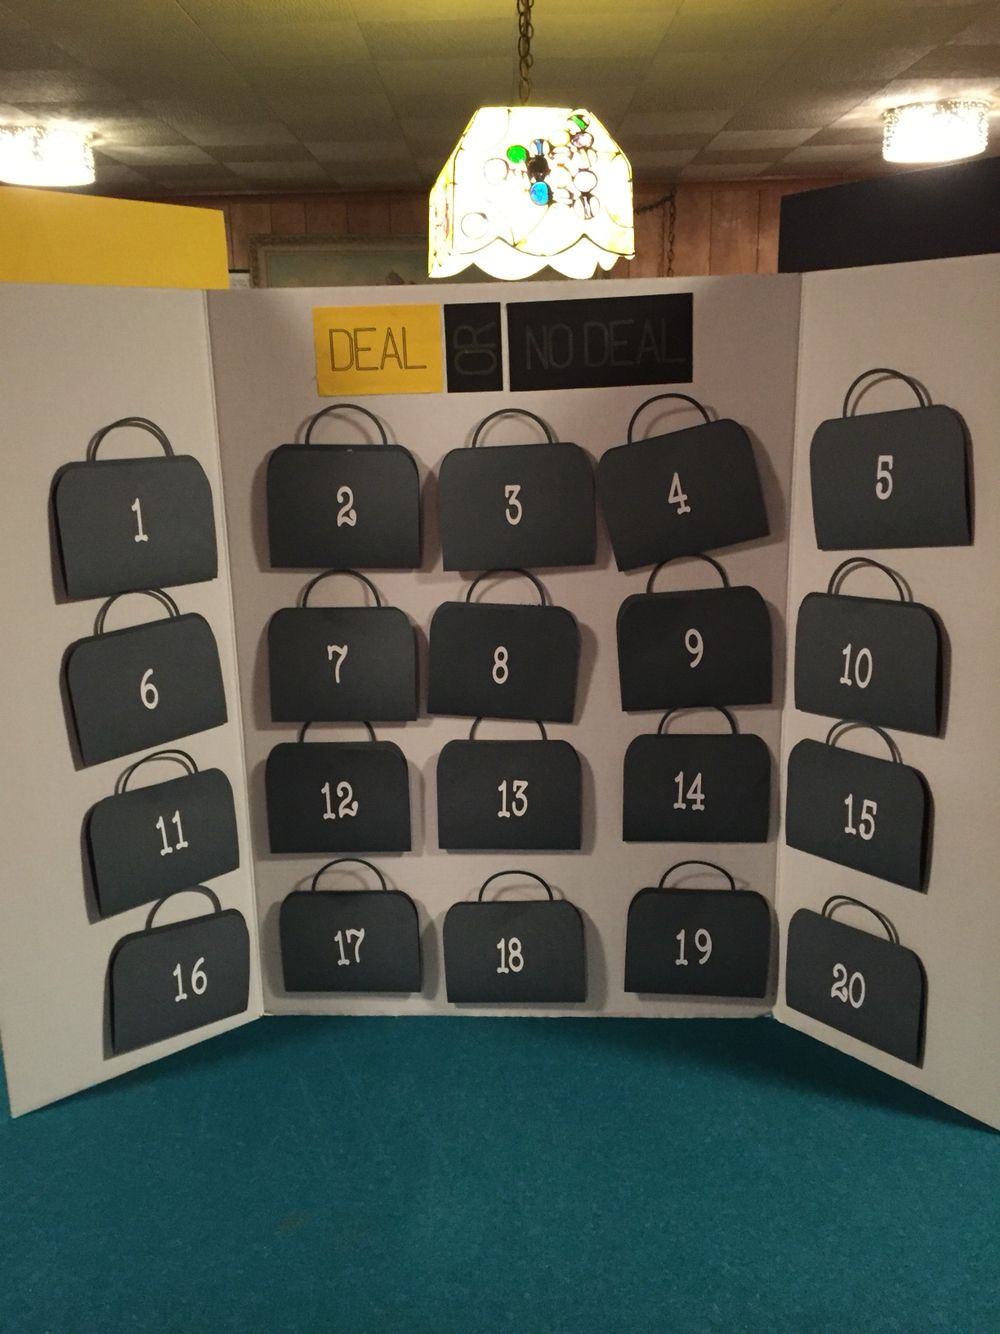 Deal or no deal made with cricut residents pinterest Homemade games for adults